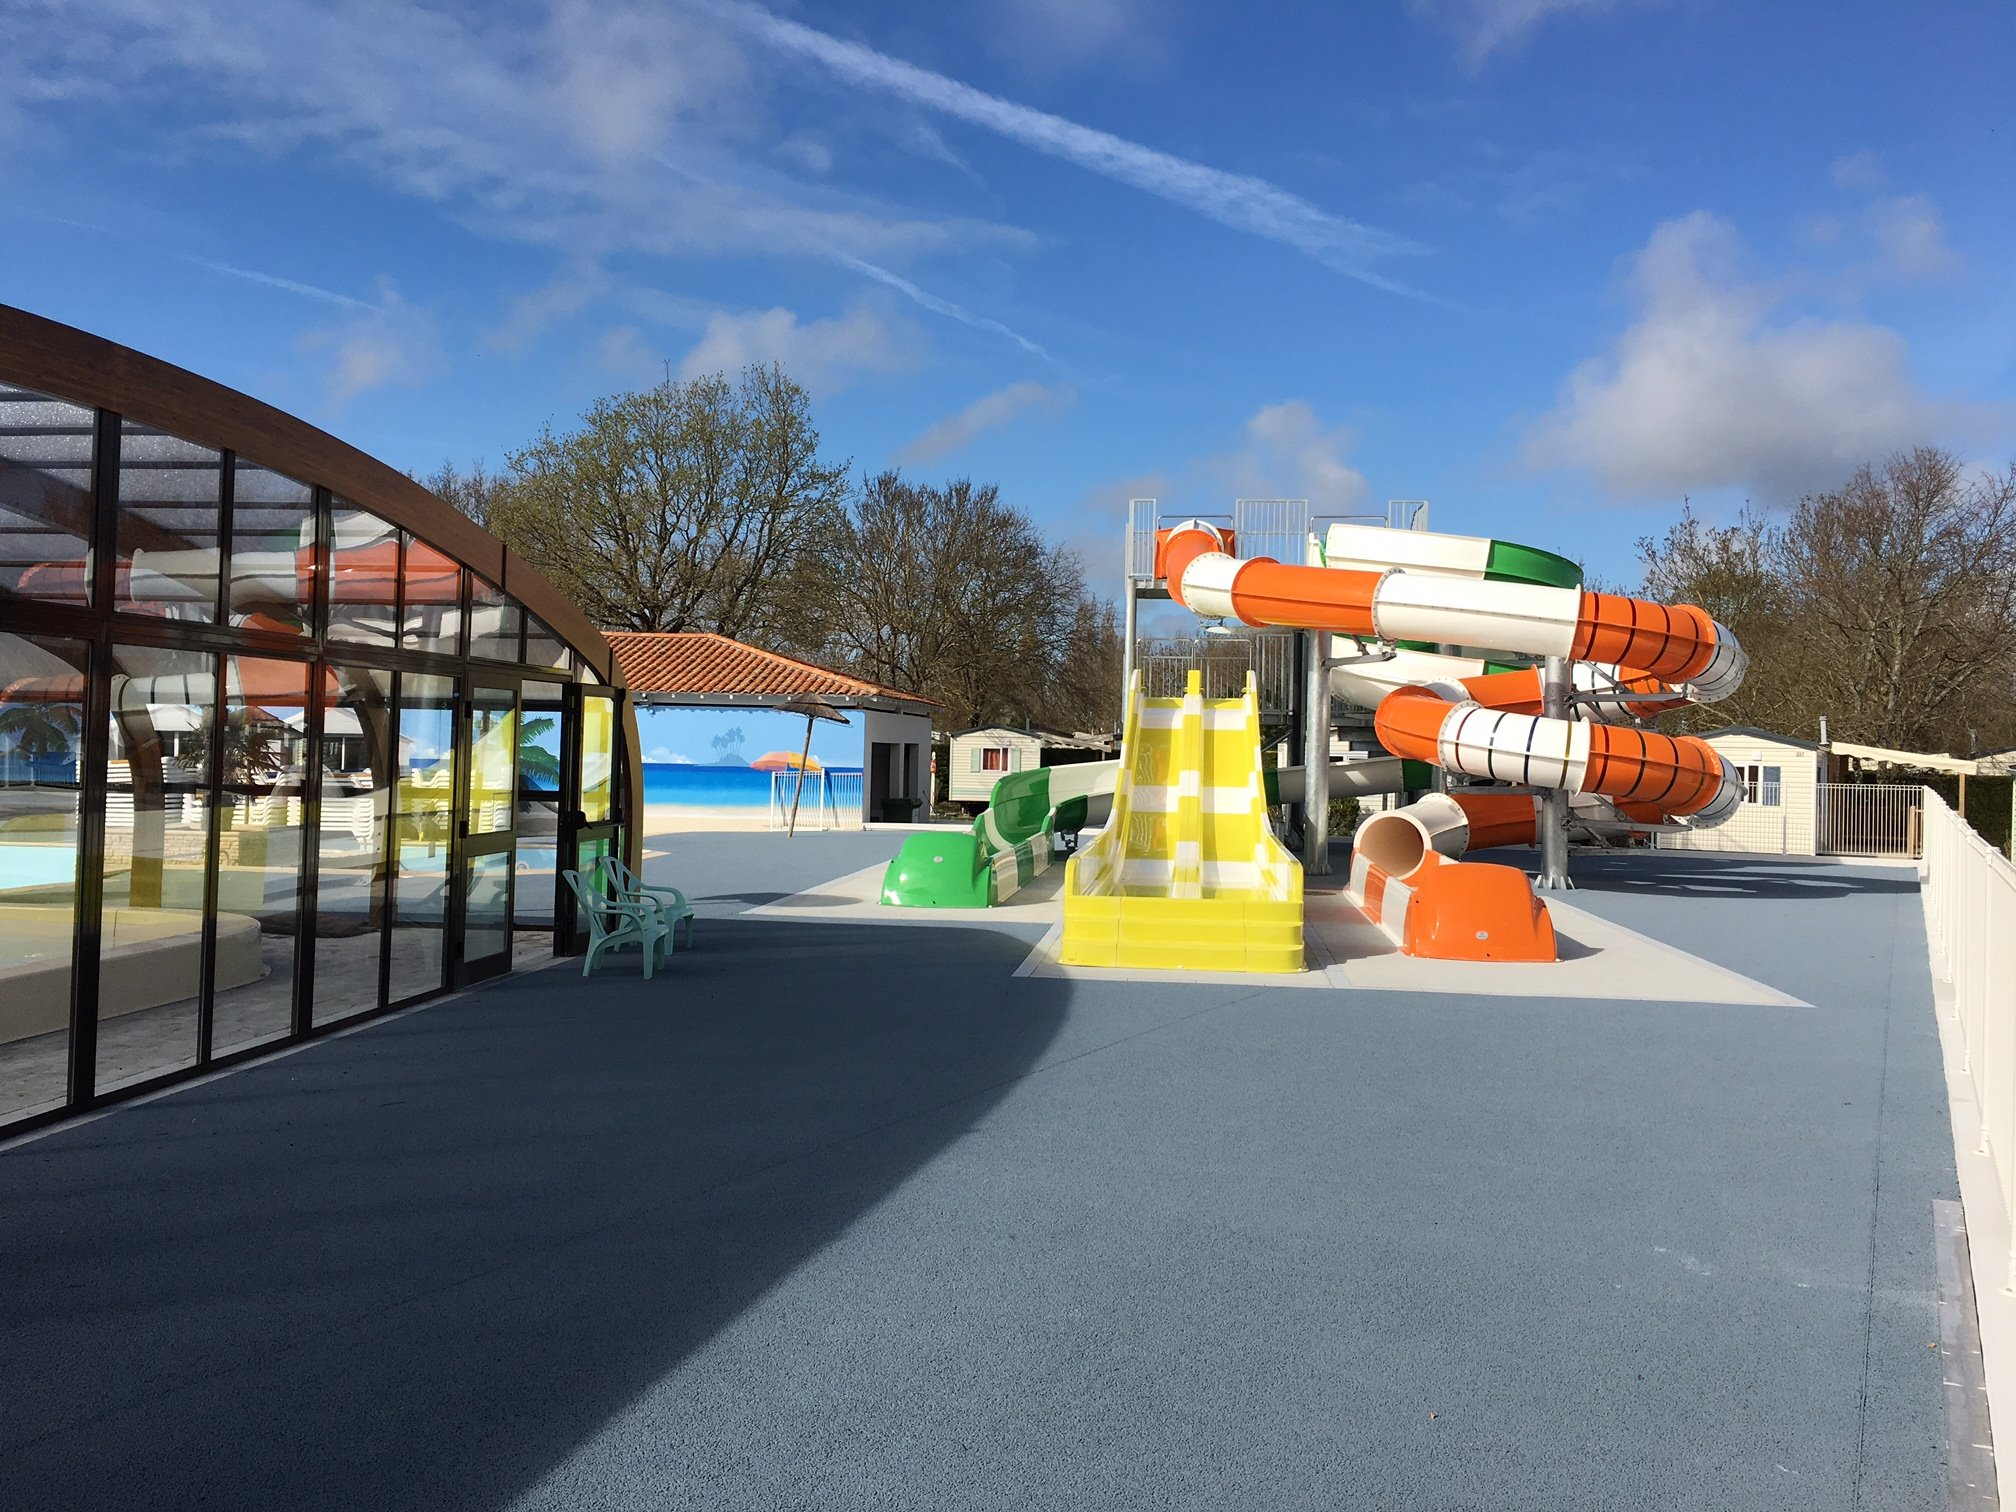 Camping le d 39 ol ron avec piscine camping ol ron loisirs for Camping poitou charente piscine